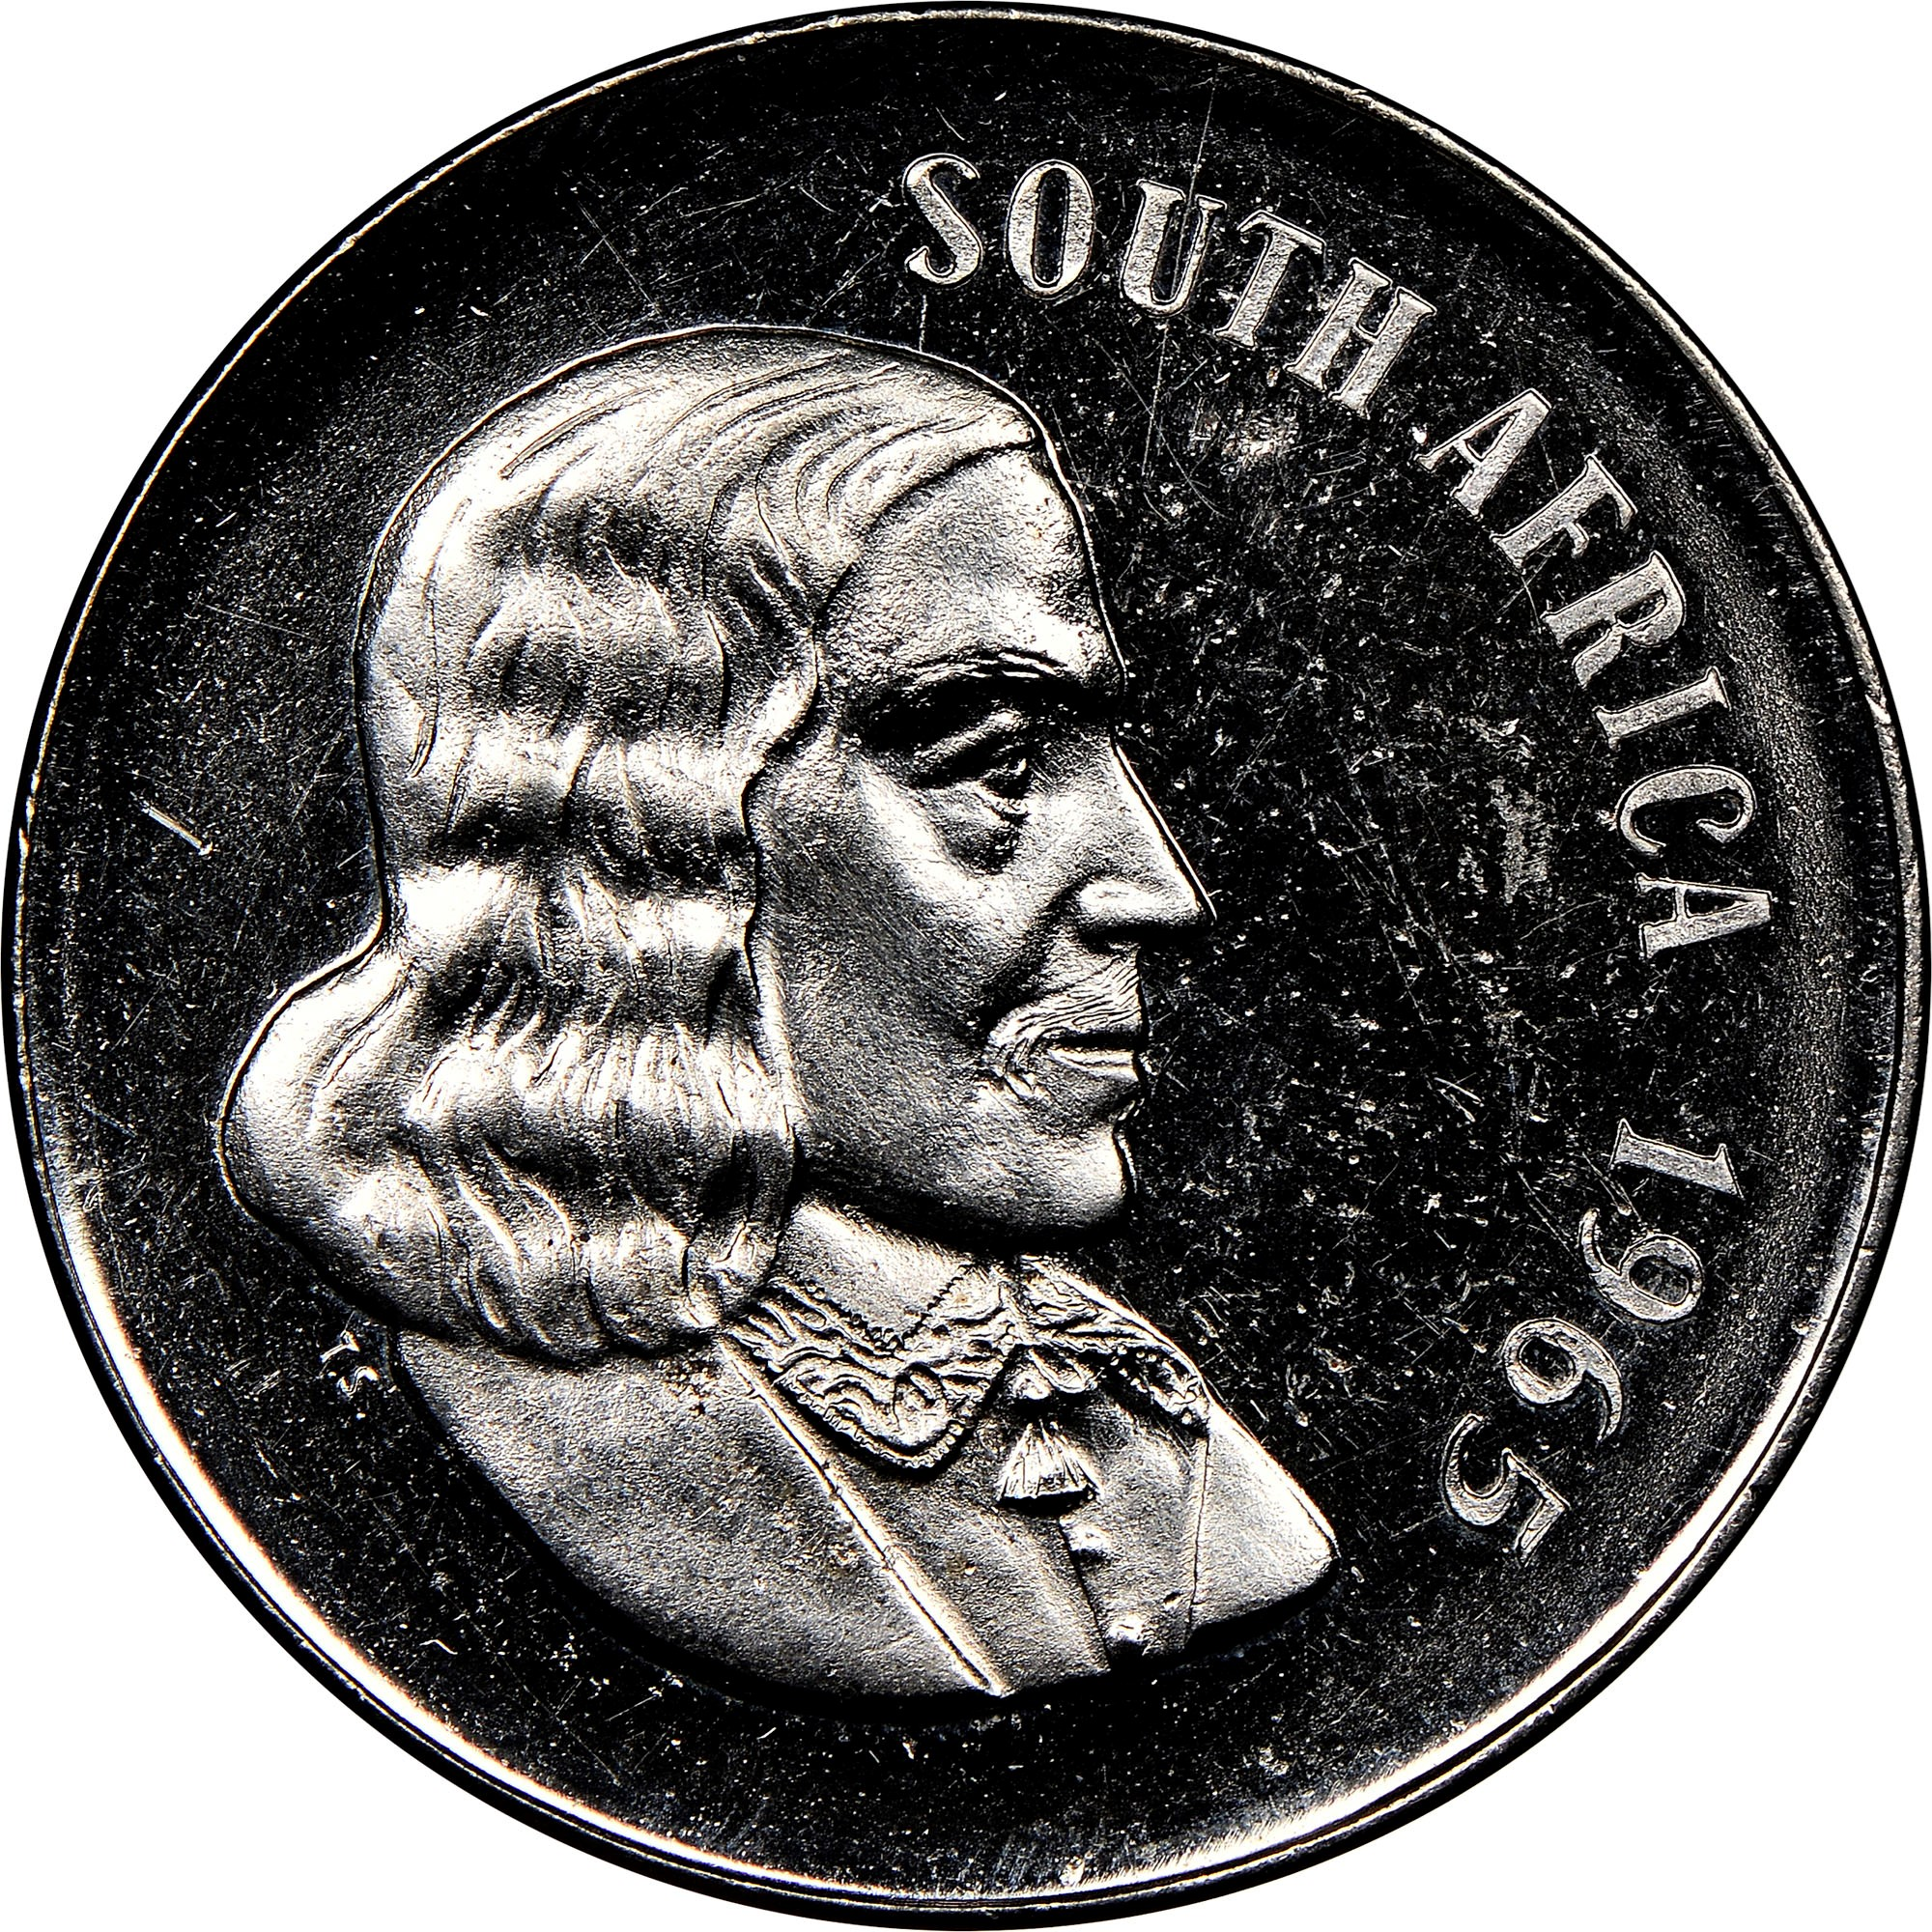 South Africa 50 Cents obverse